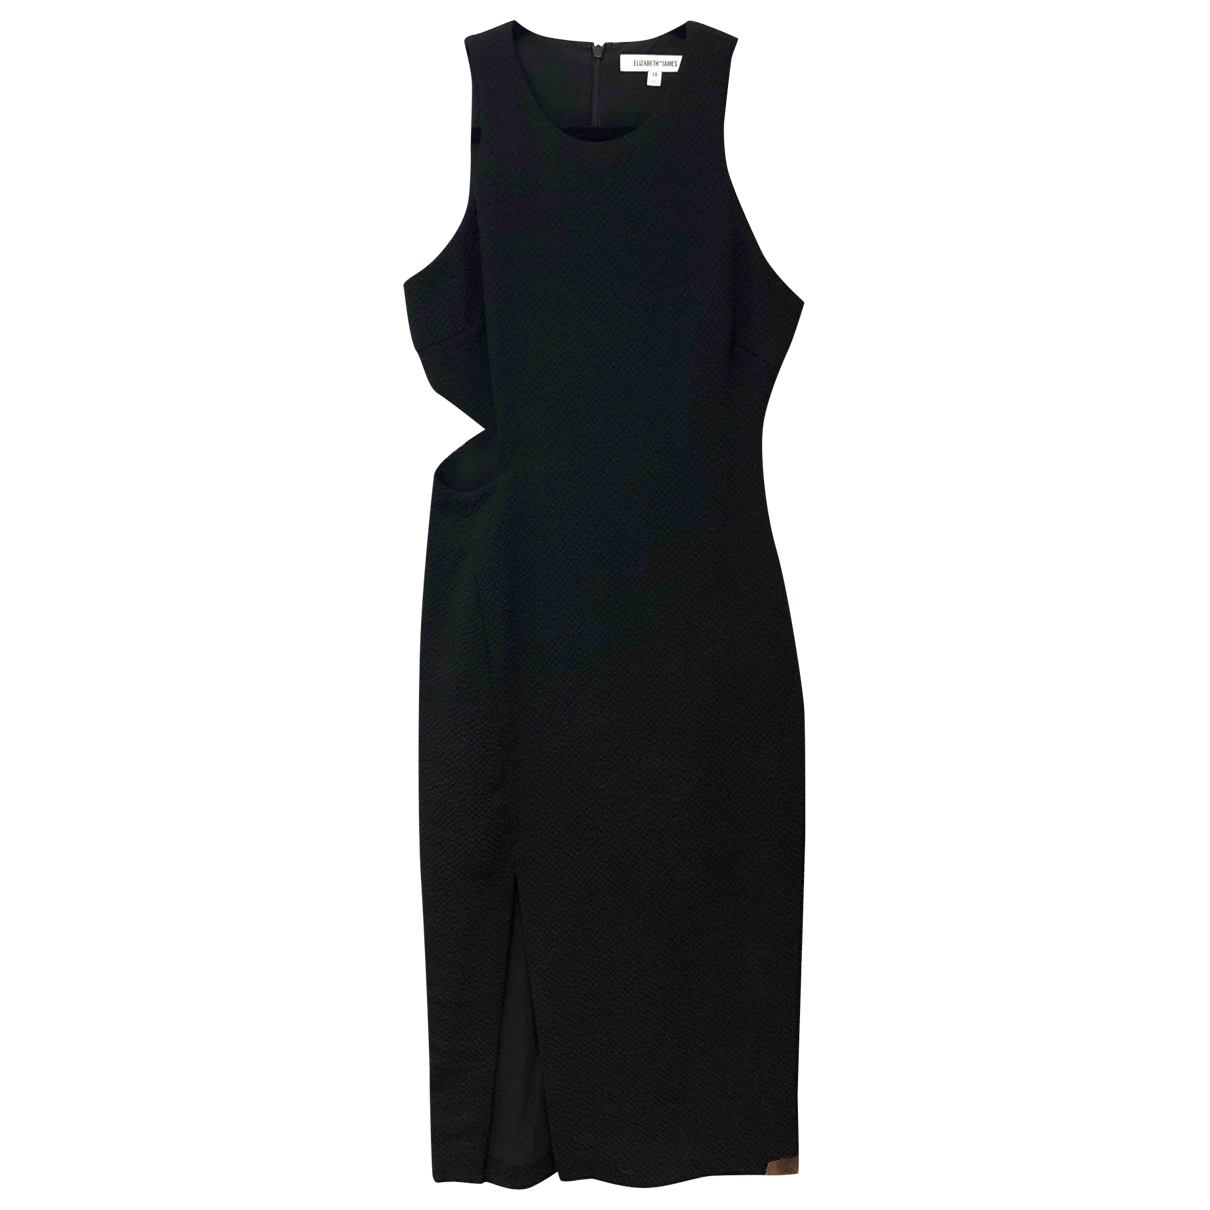 Elizabeth And James \N Black dress for Women 10 US